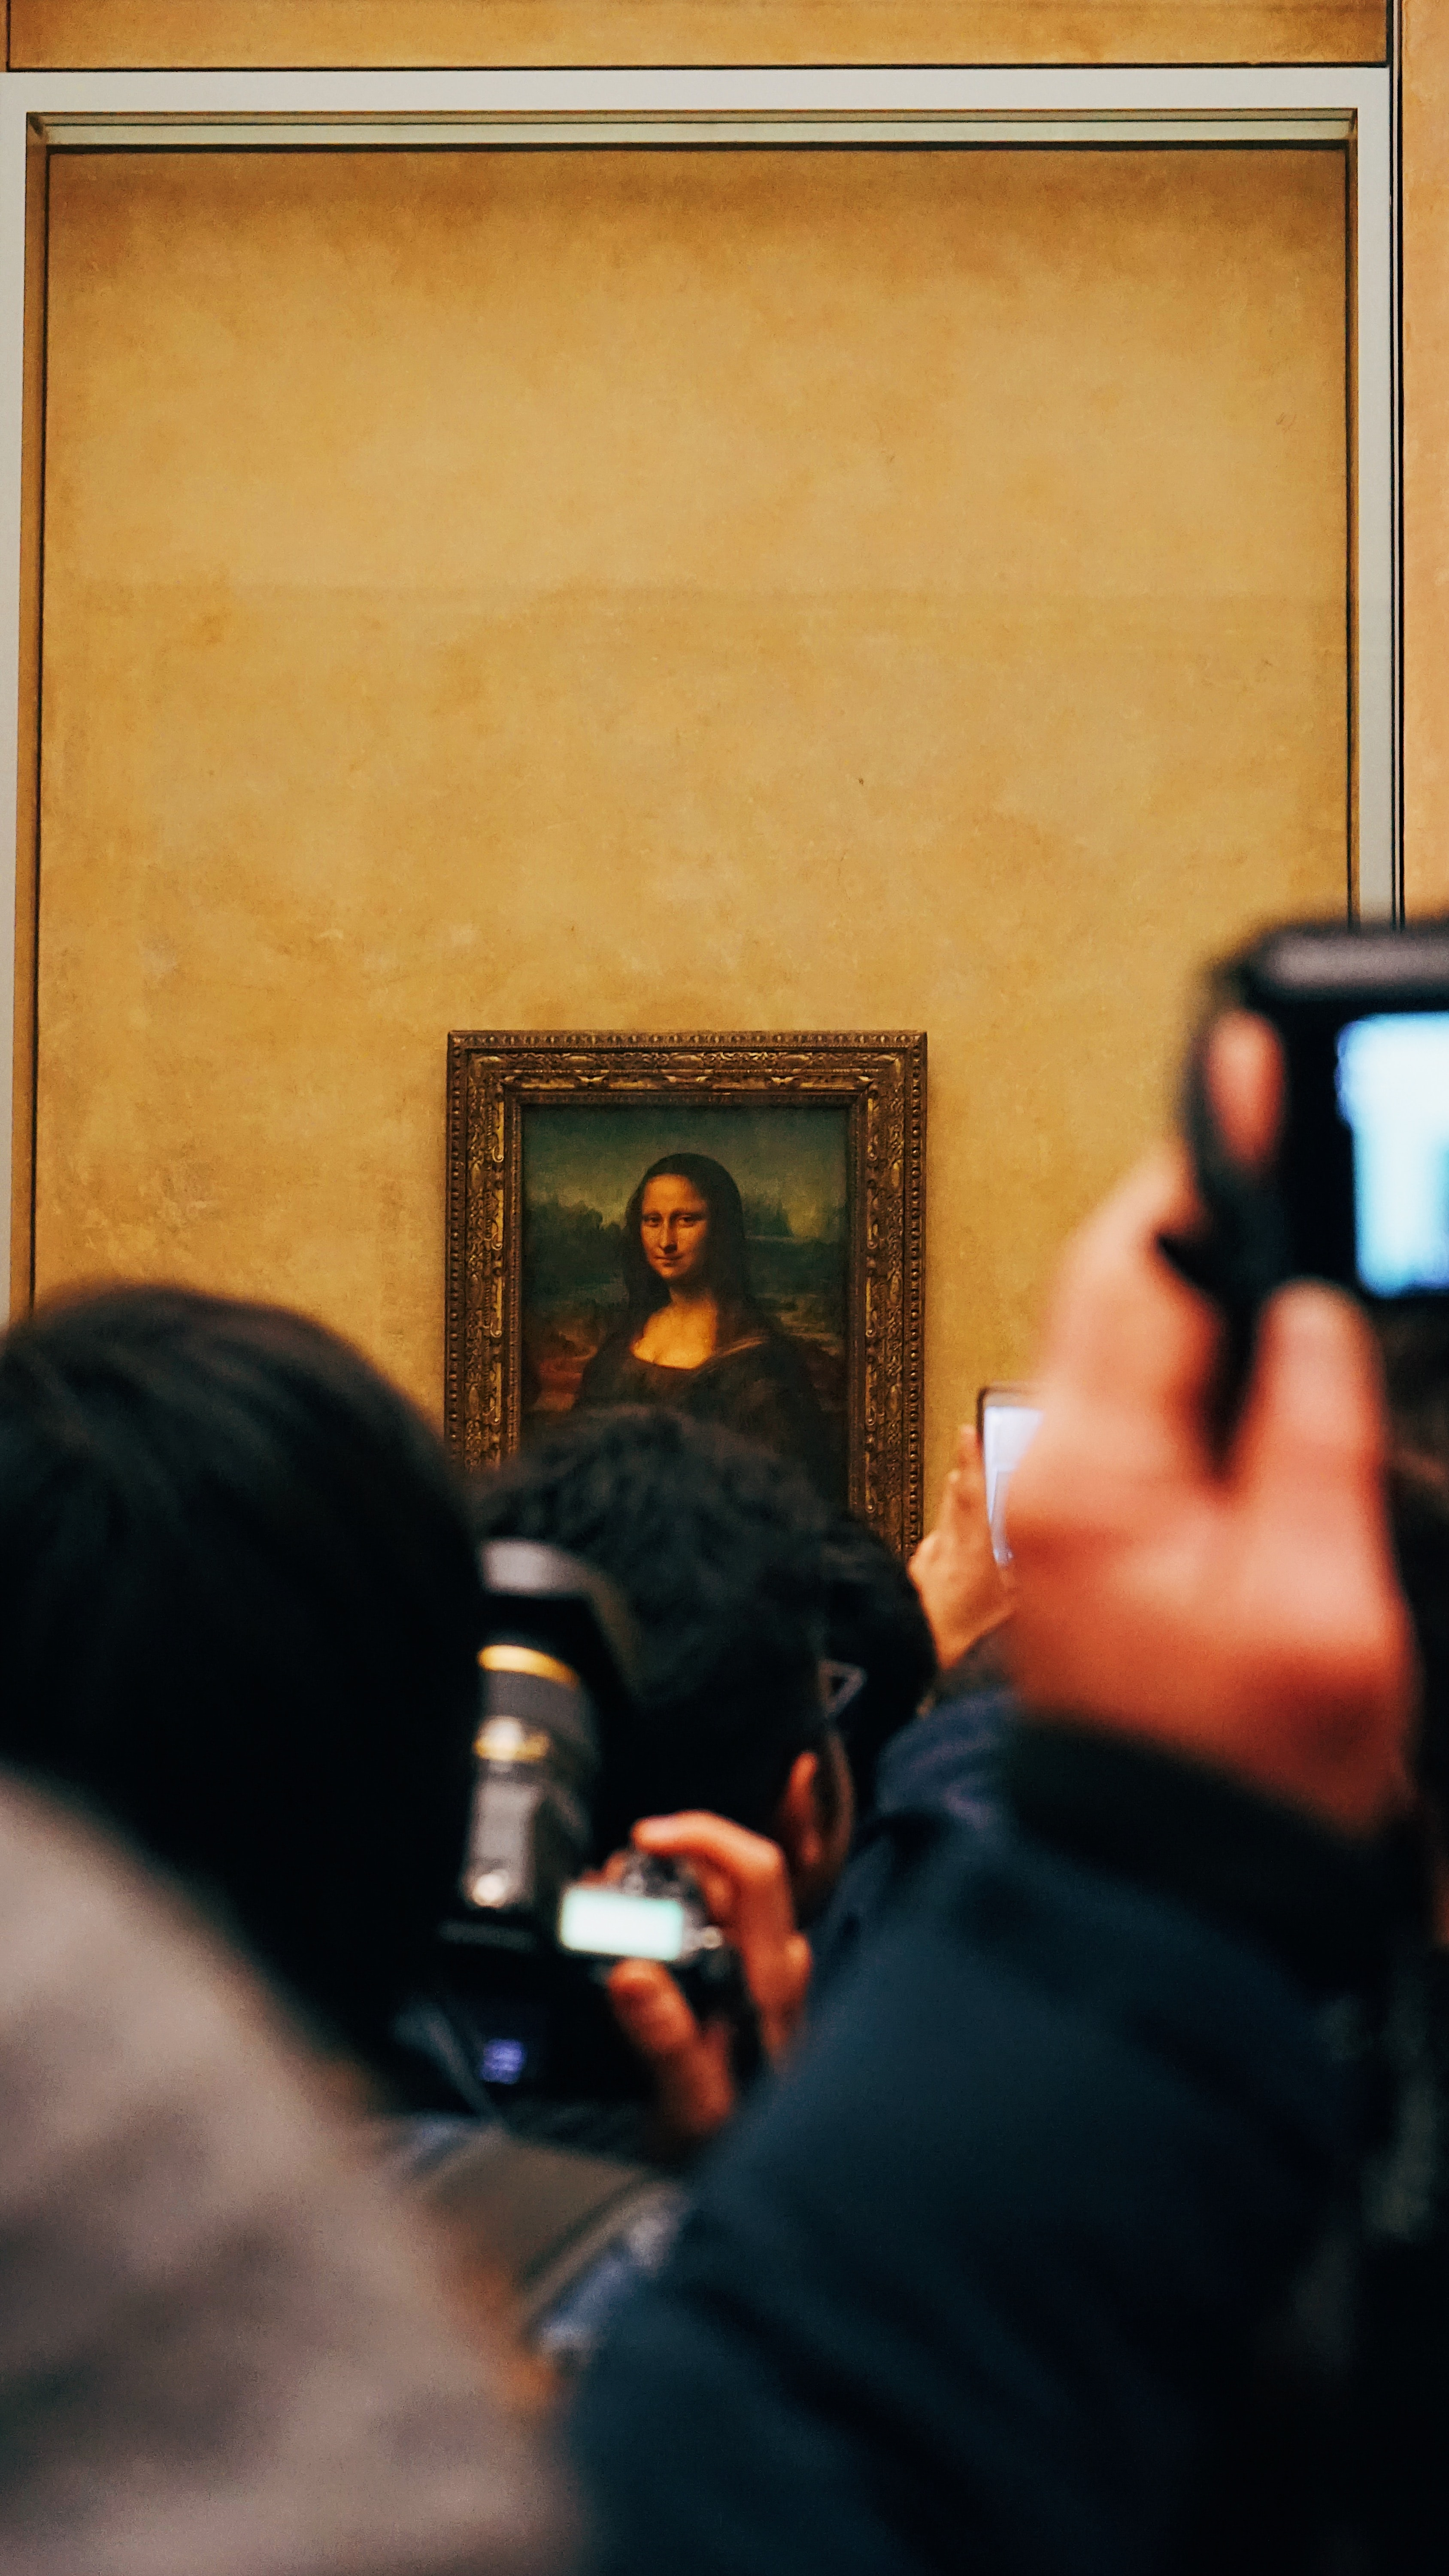 Mona Lisa by Leonardo Da Vinci painting